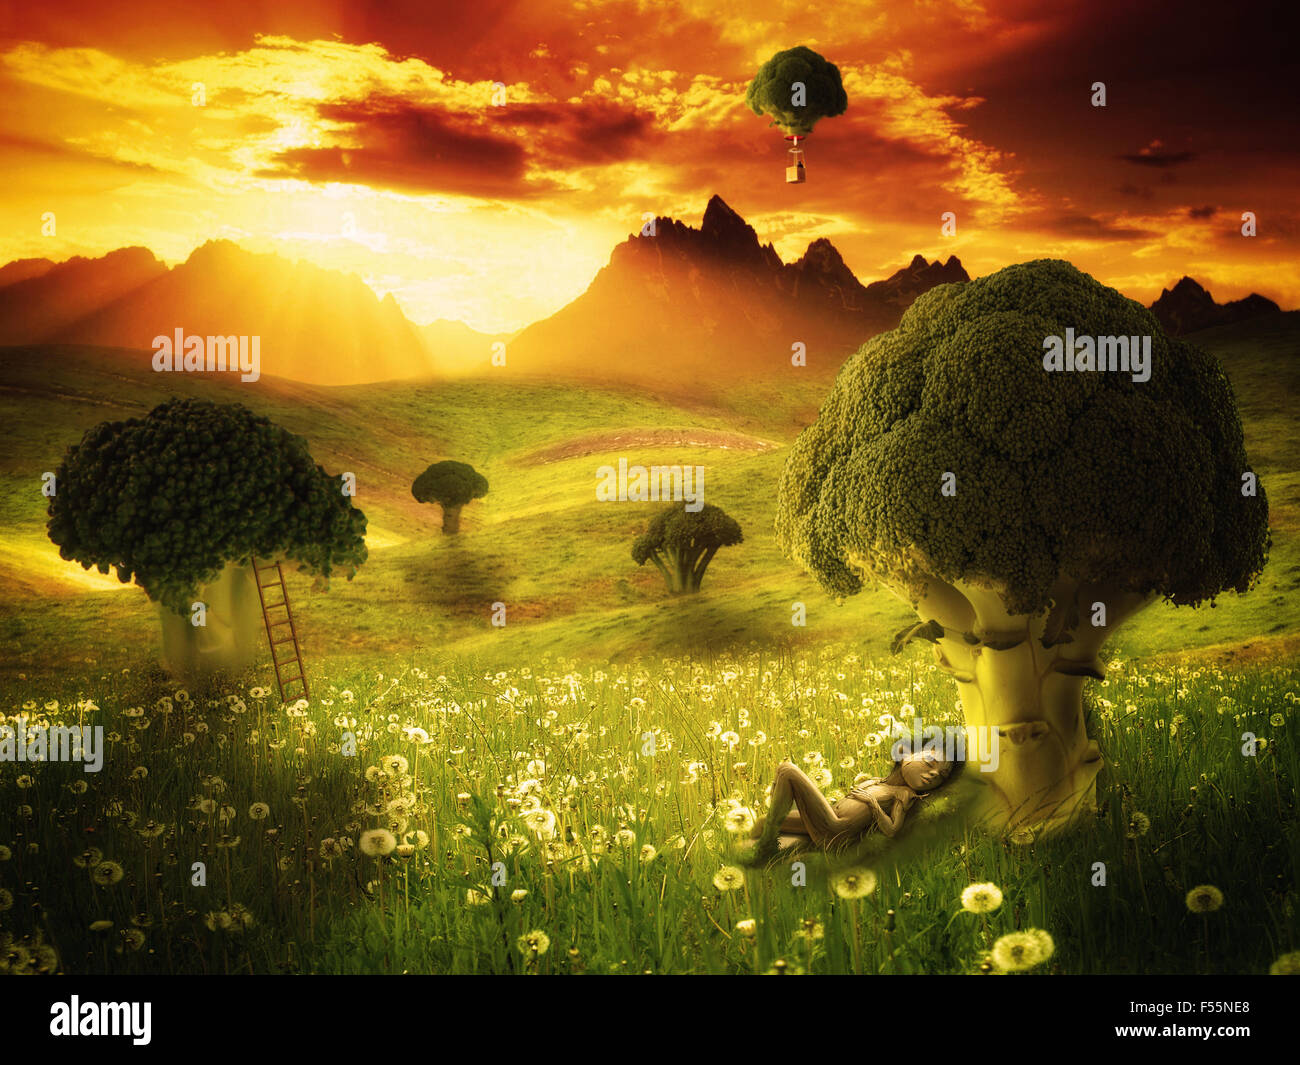 Fantasy broccoli land with elf sleeping - Stock Image